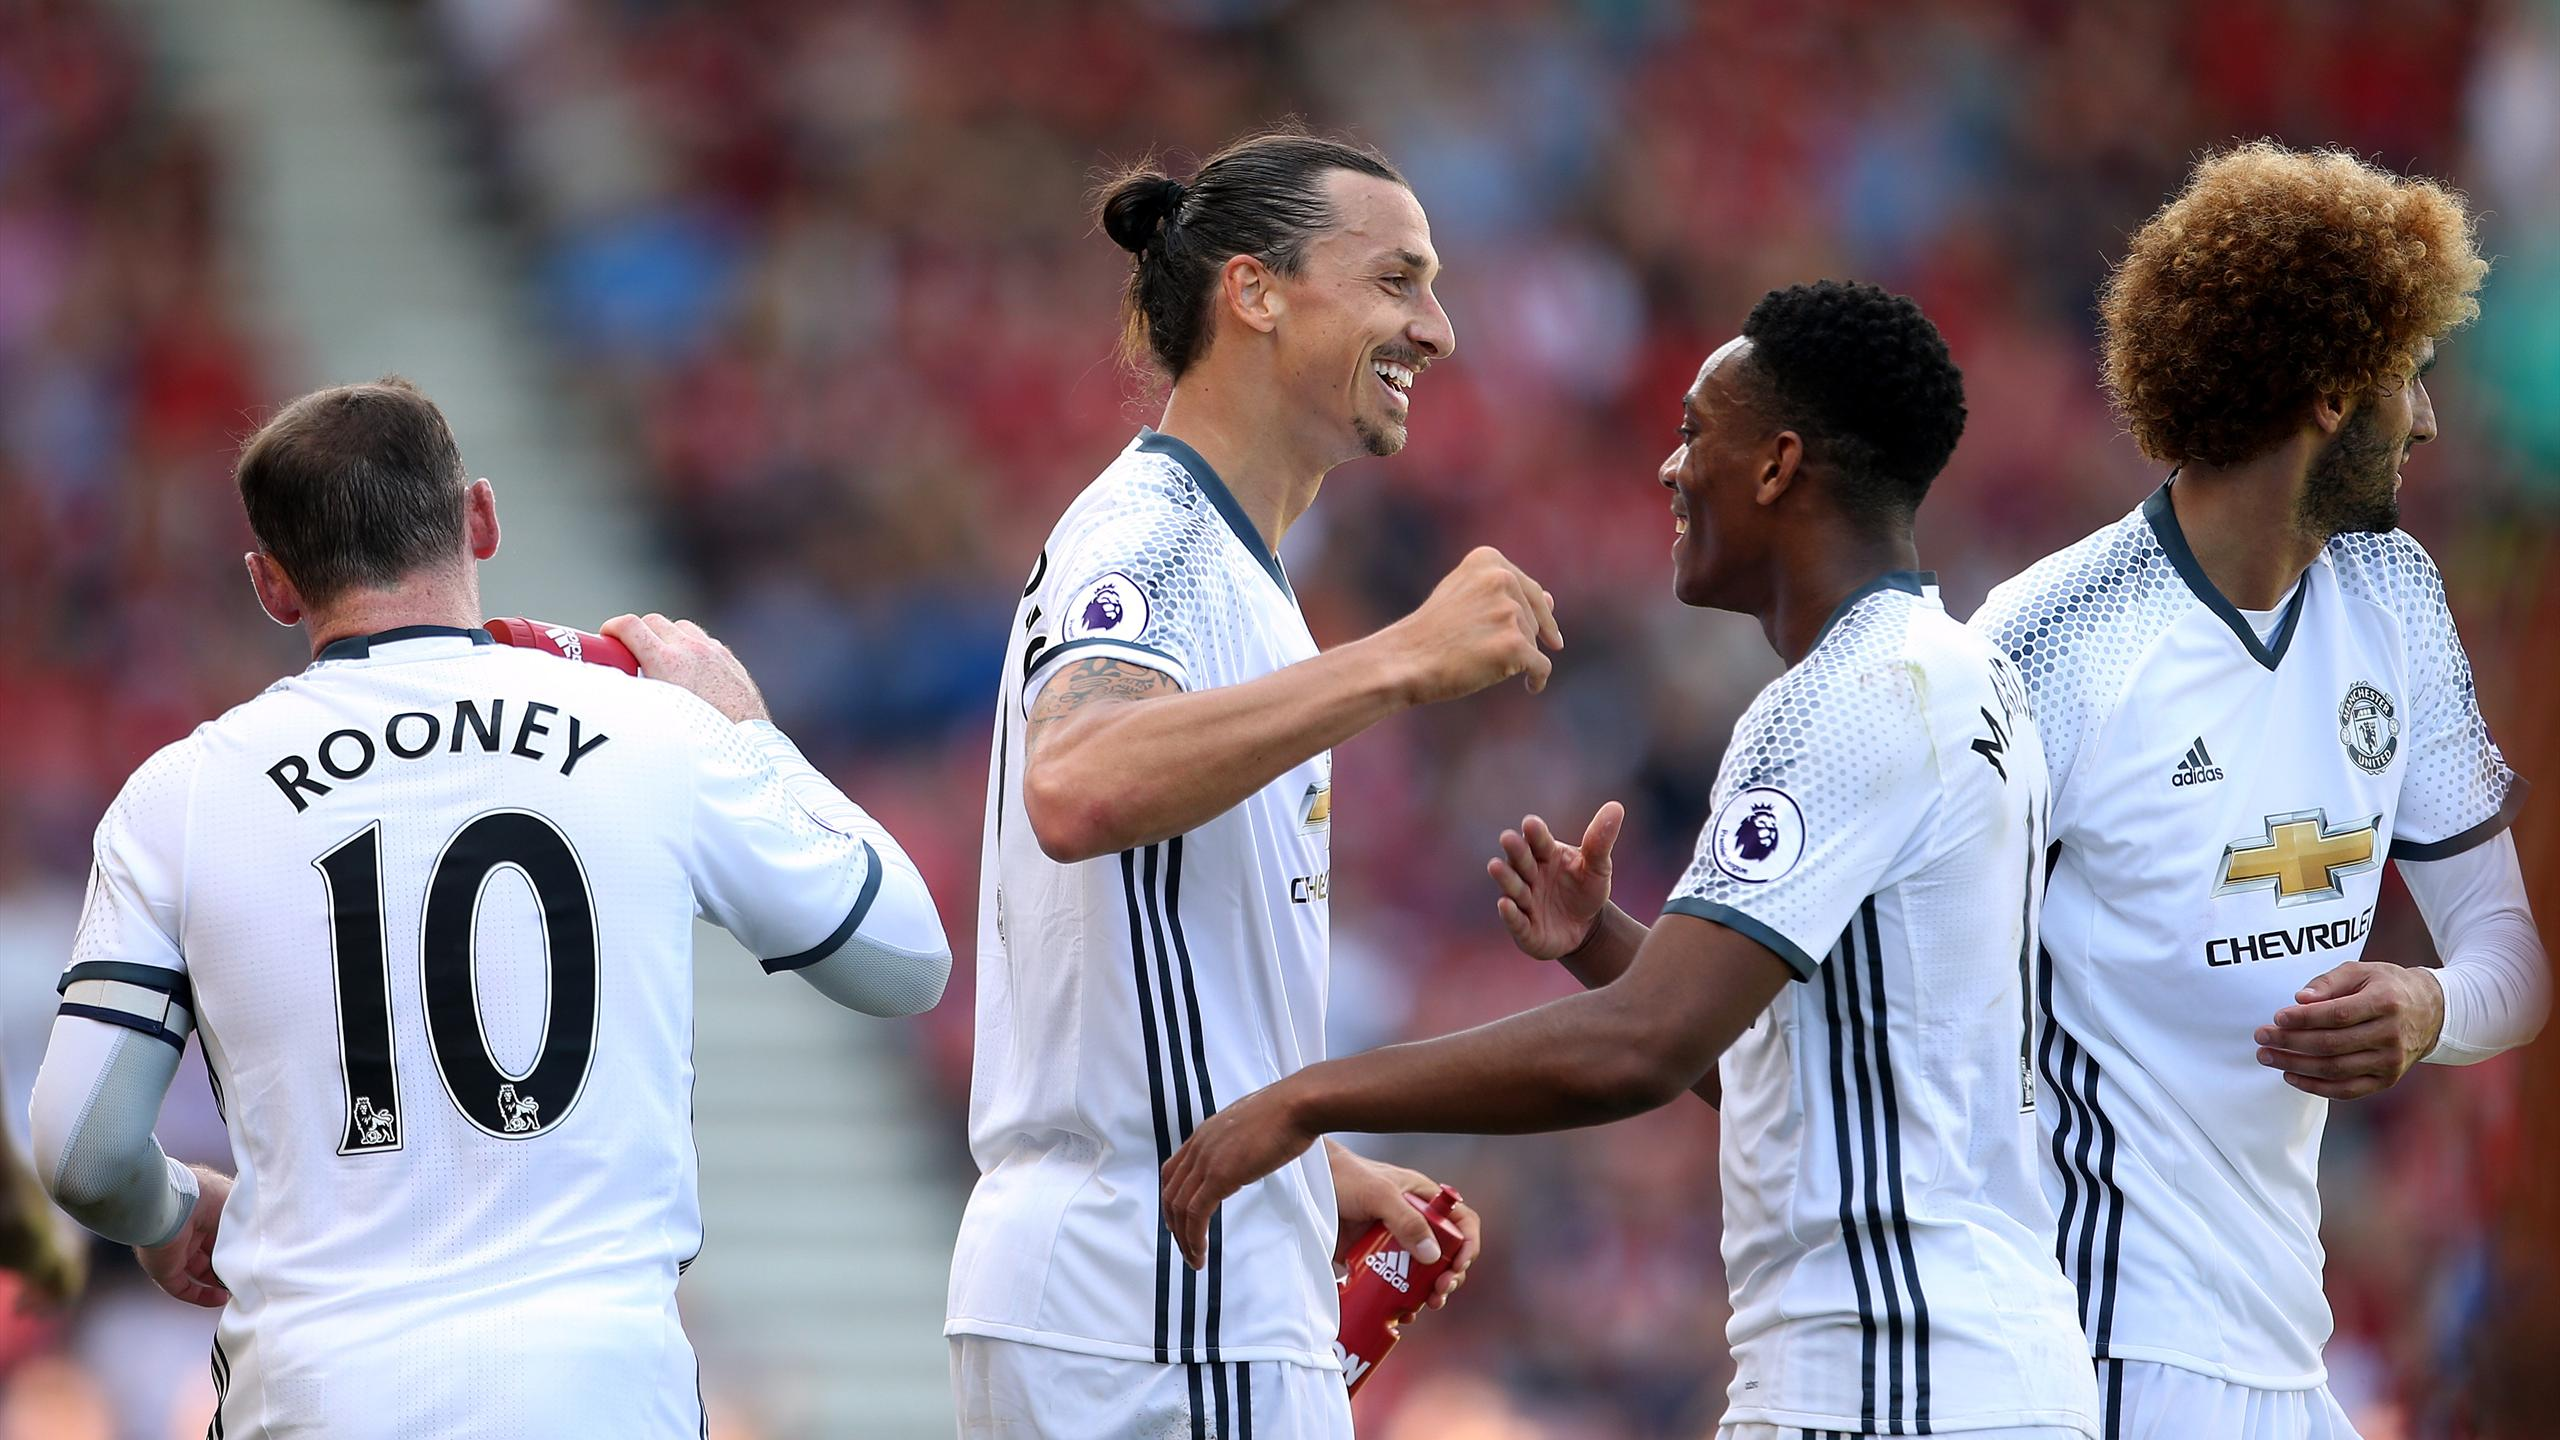 Manchester United's Zlatan Ibrahimovic (centre) celebrates scoring his side's third goal of the game